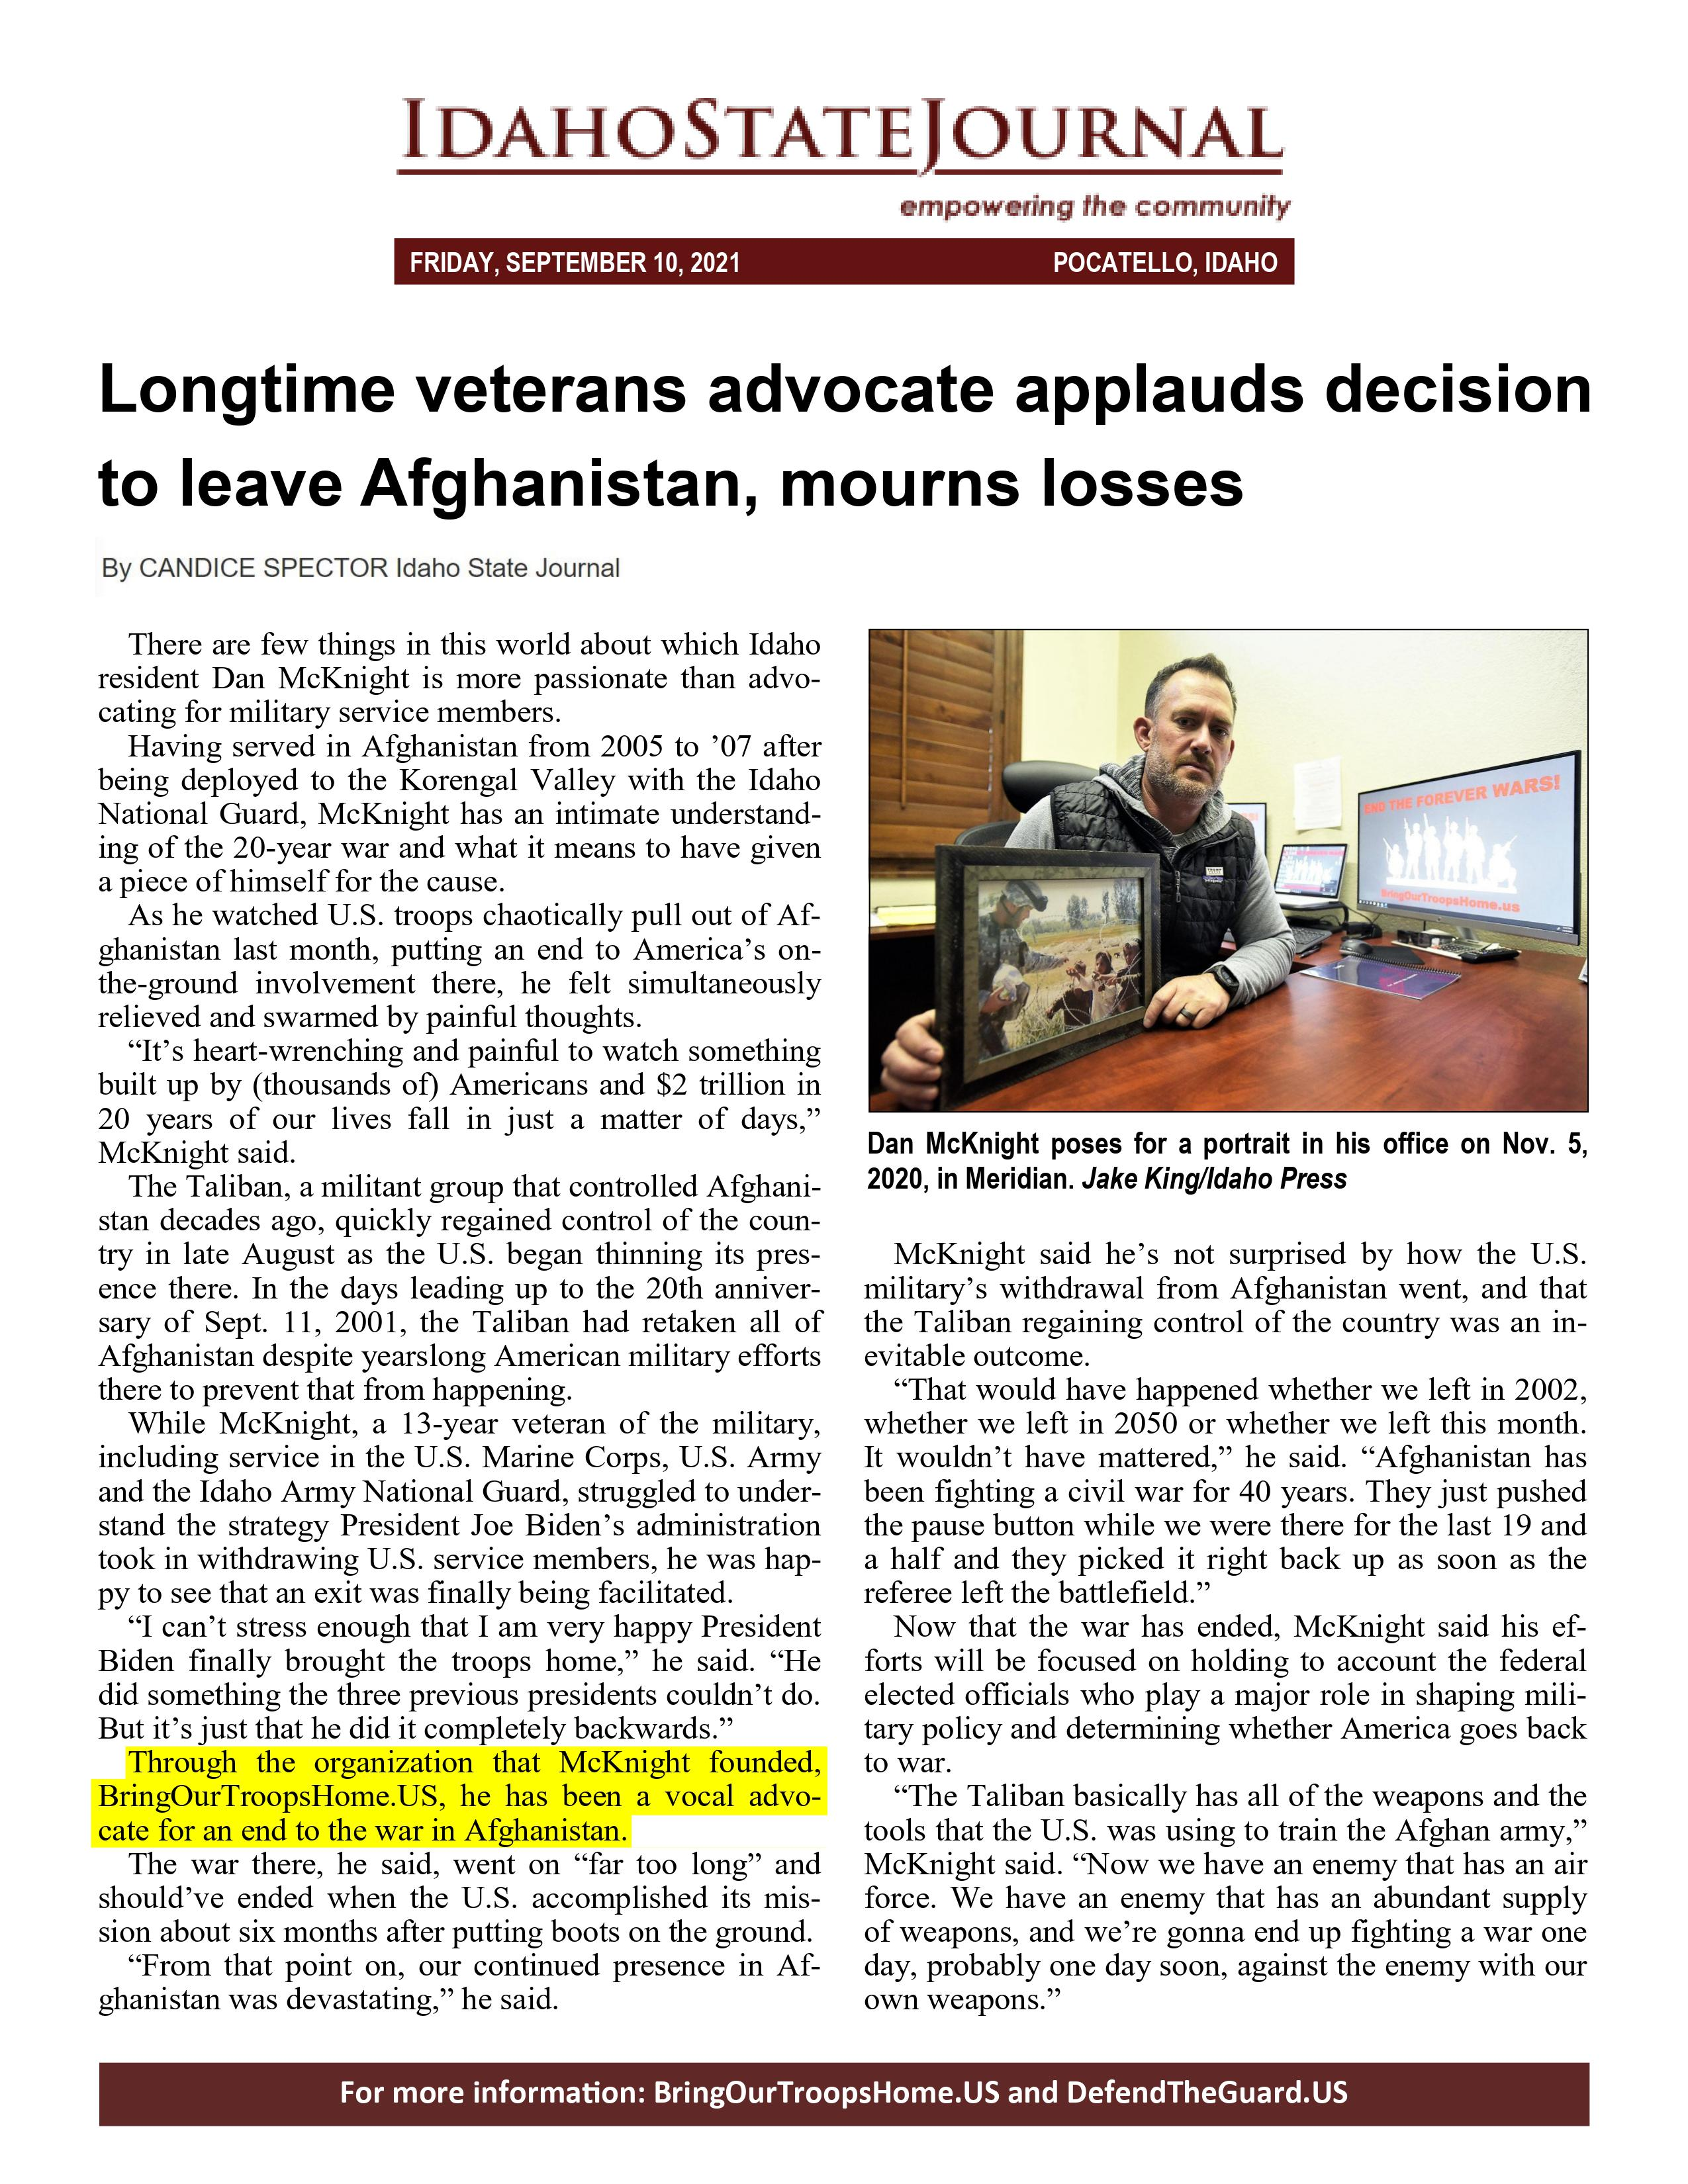 Longtime Veterans Advocate Applauds Decision to Leave Afghanistan, Mourns Losses